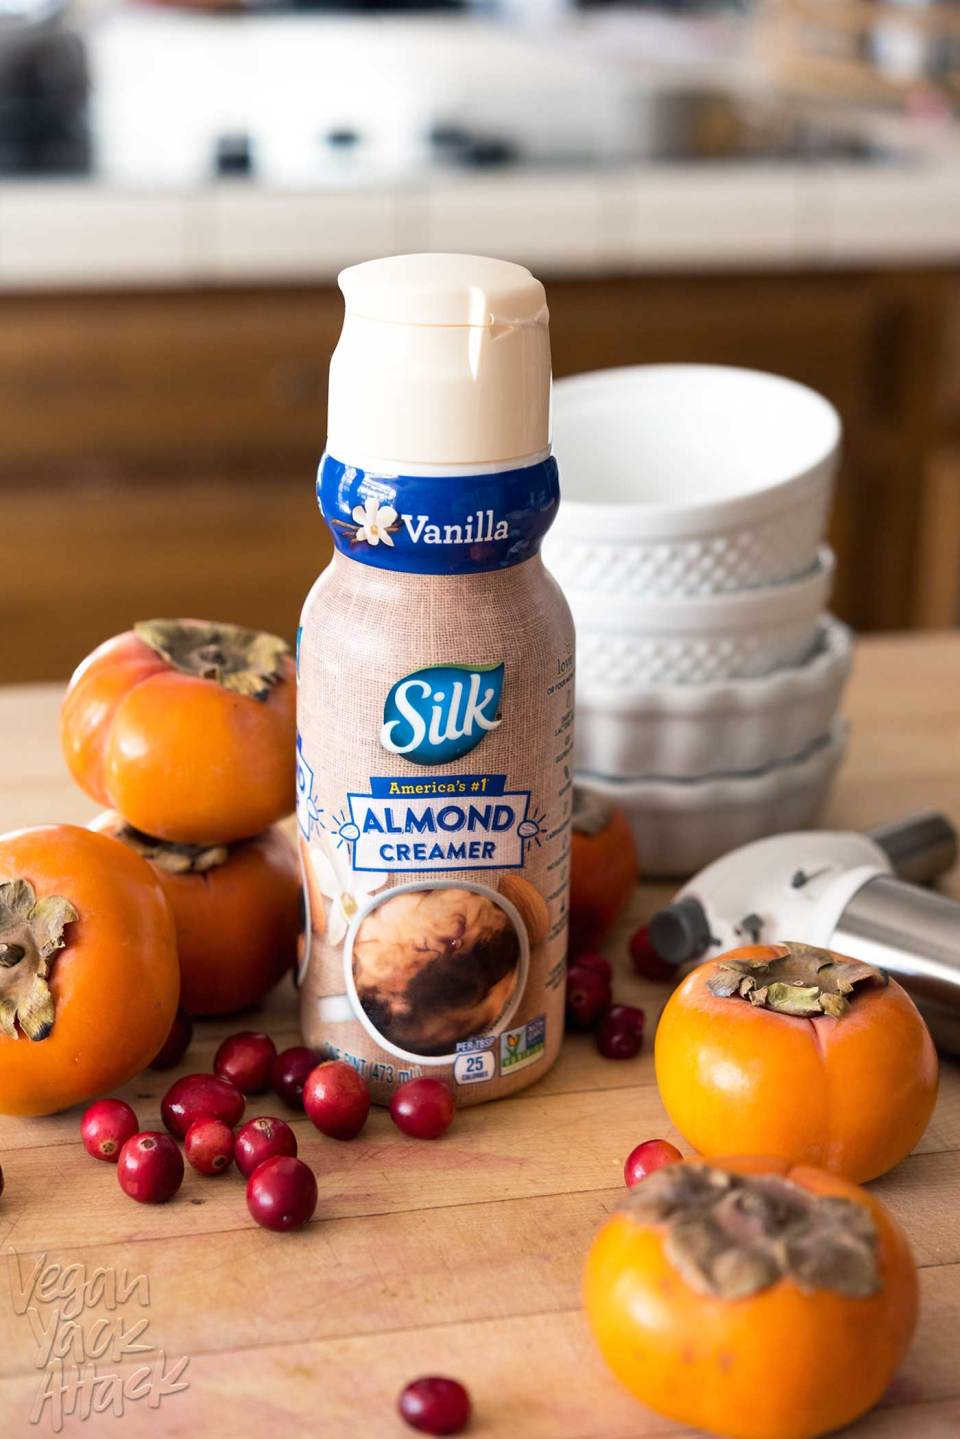 Looking for a stunning holiday dessert that is easy-to-make? Check out this impressive, vegan Persimmon Crème Brûlée with Sugared Cranberries! Made with Silk's Vanilla Almond Creamer. #SilkCreamer #glutenfree #soyfree